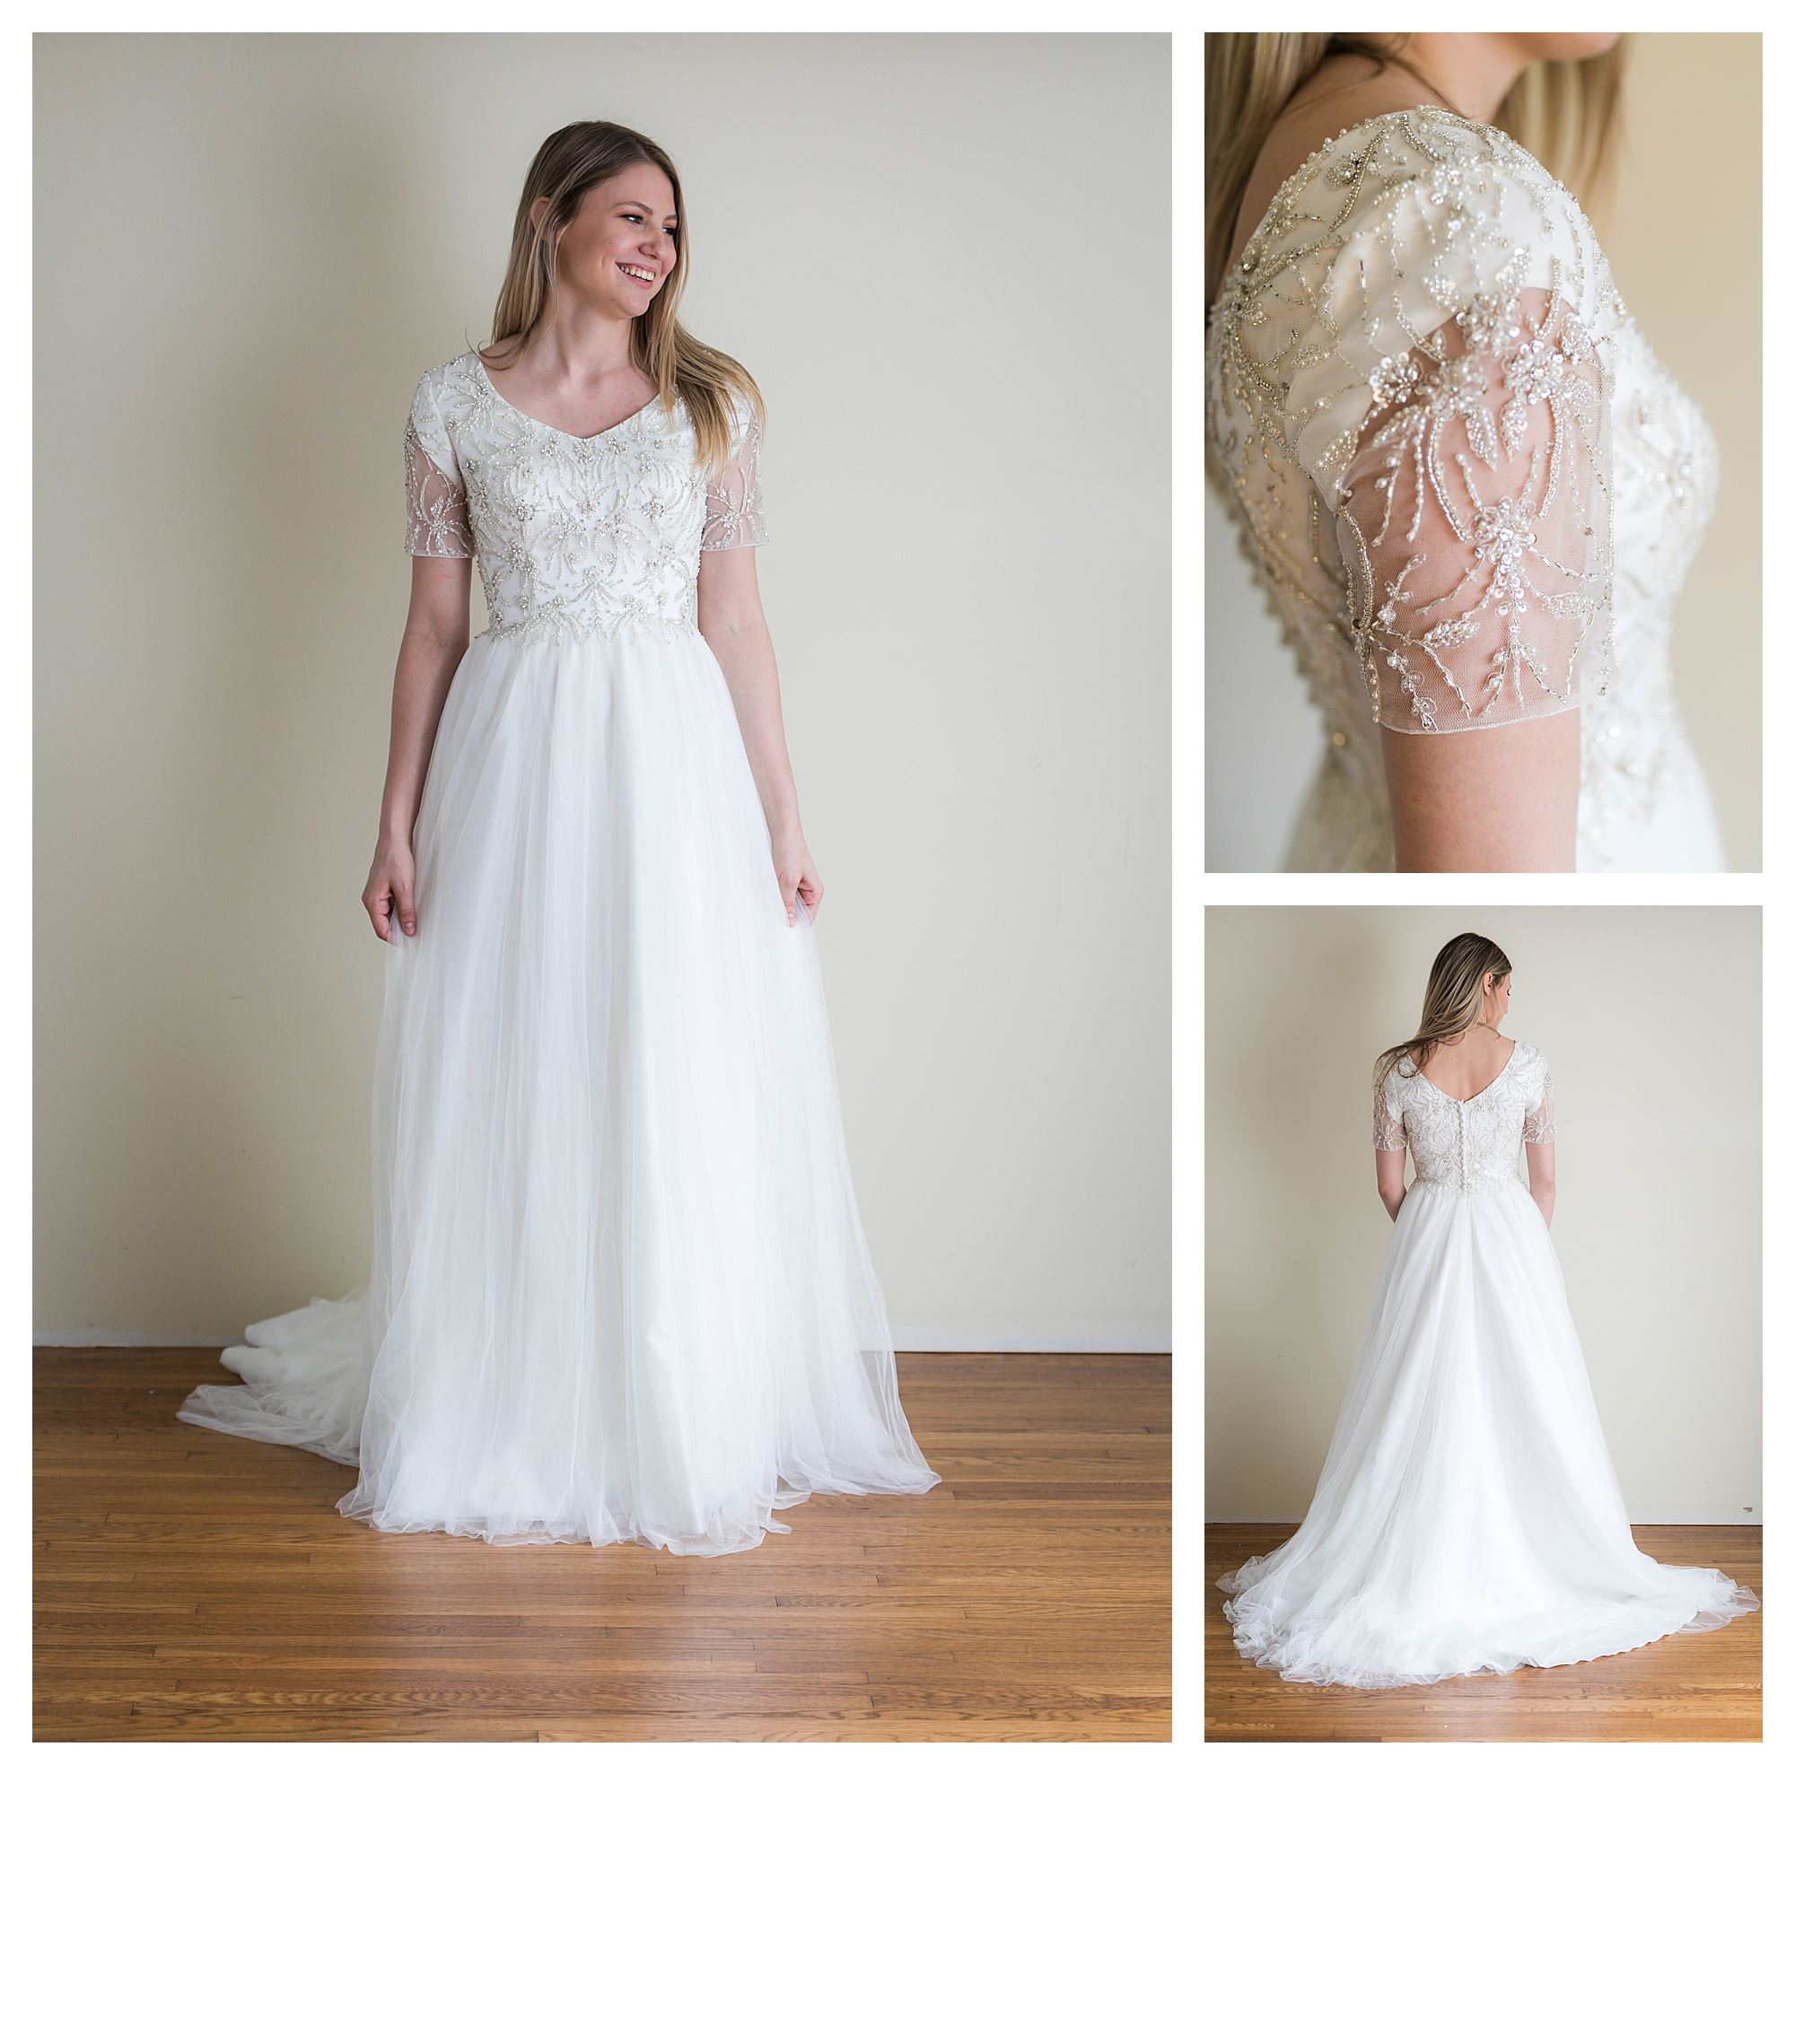 Saga - Size 8 - Ivory - Originally priced $1899 - Sample box price $1299